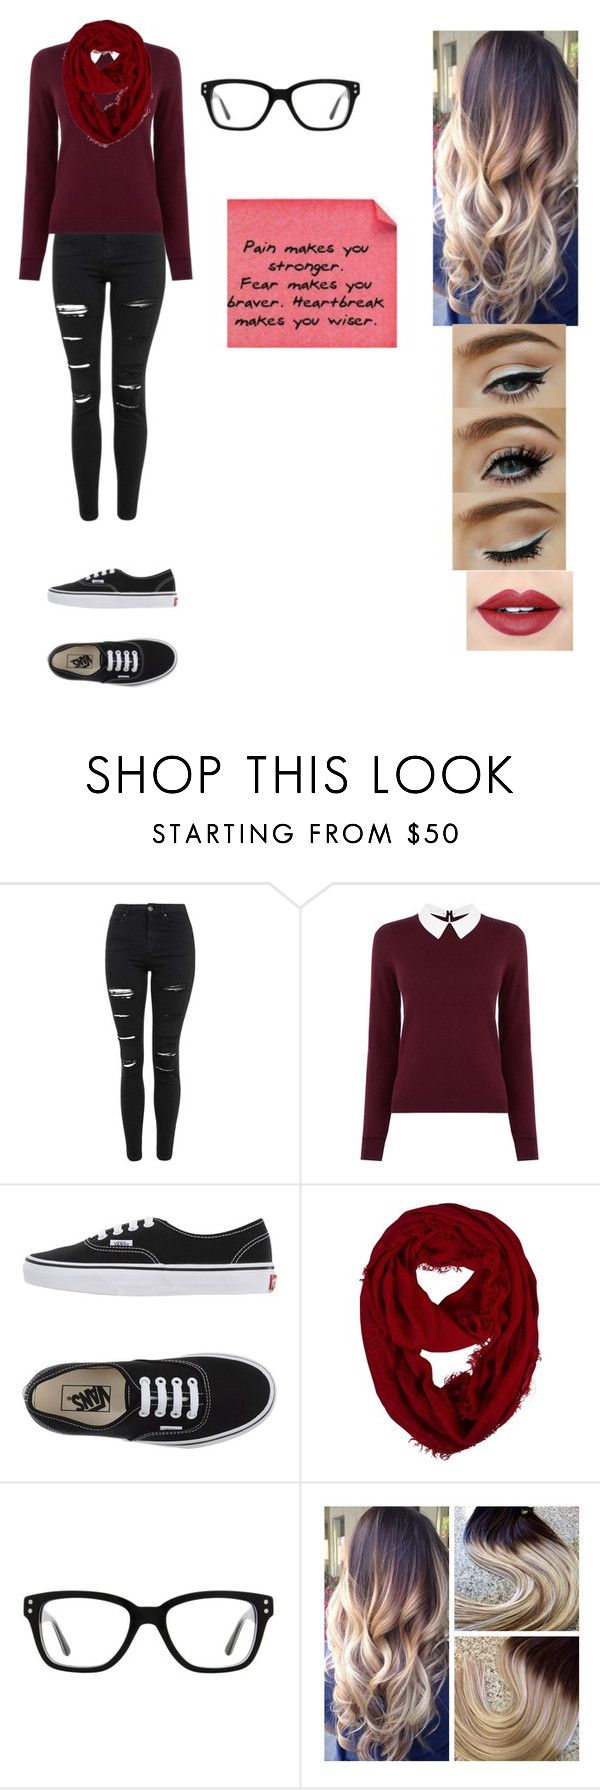 """the young adult #1"" by takaiya-is-a-penguin ❤ liked on Polyvore featuring Topshop, Oasis, Vans, Converse, Fiebiger, women's clothing, women's fashion, women, female and woman"